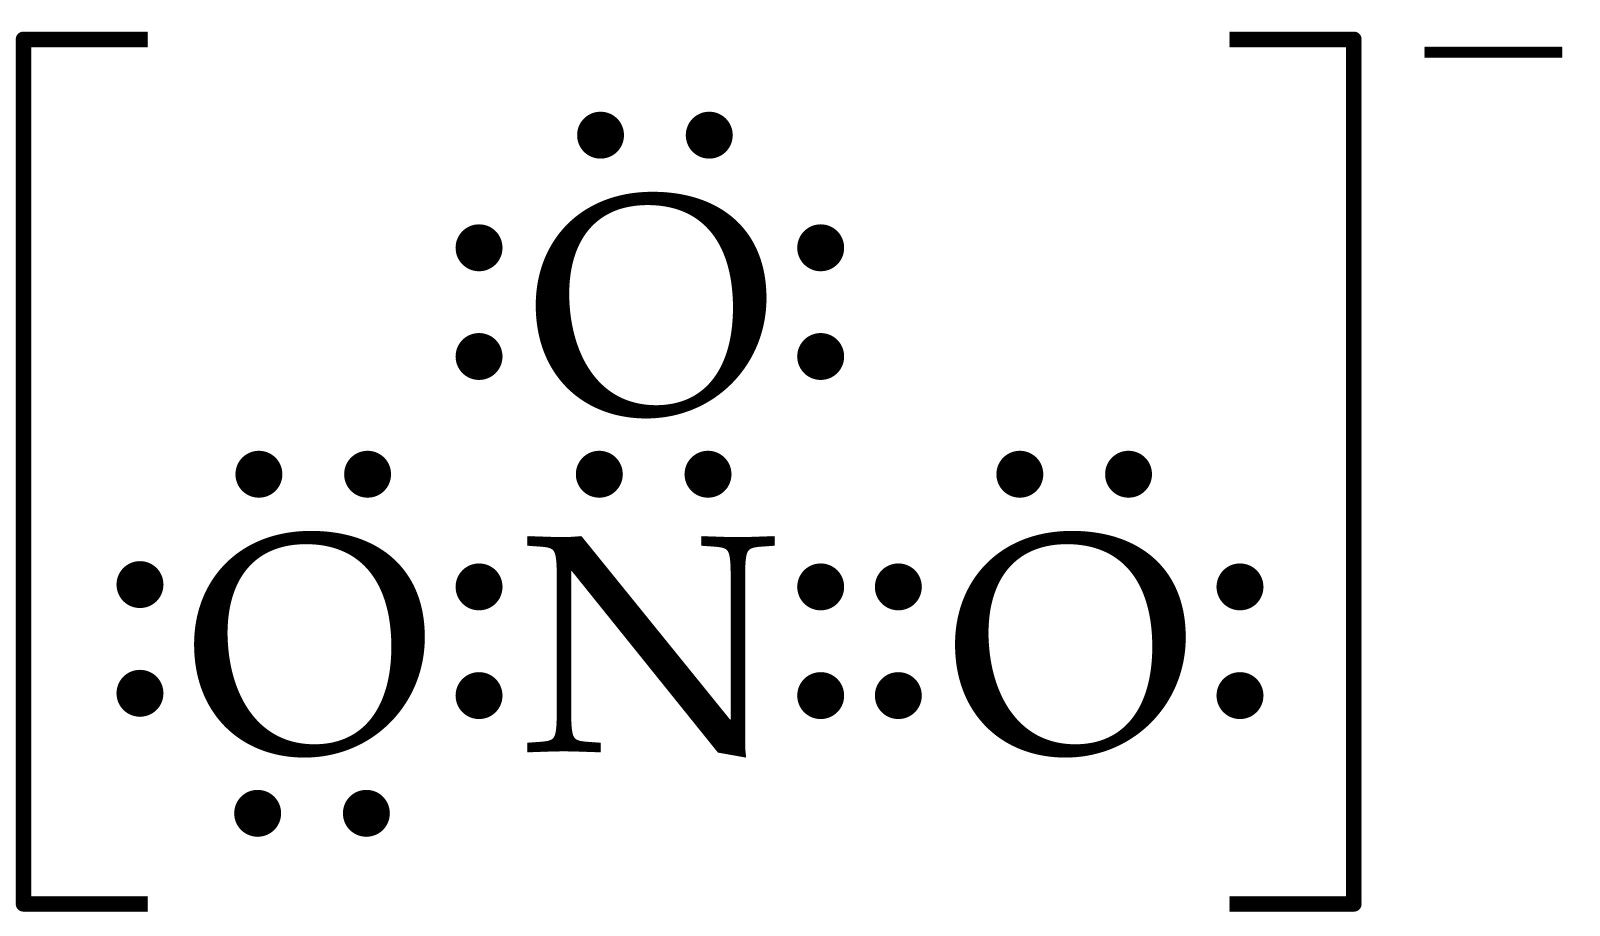 Chlorine Electron Dot Diagram